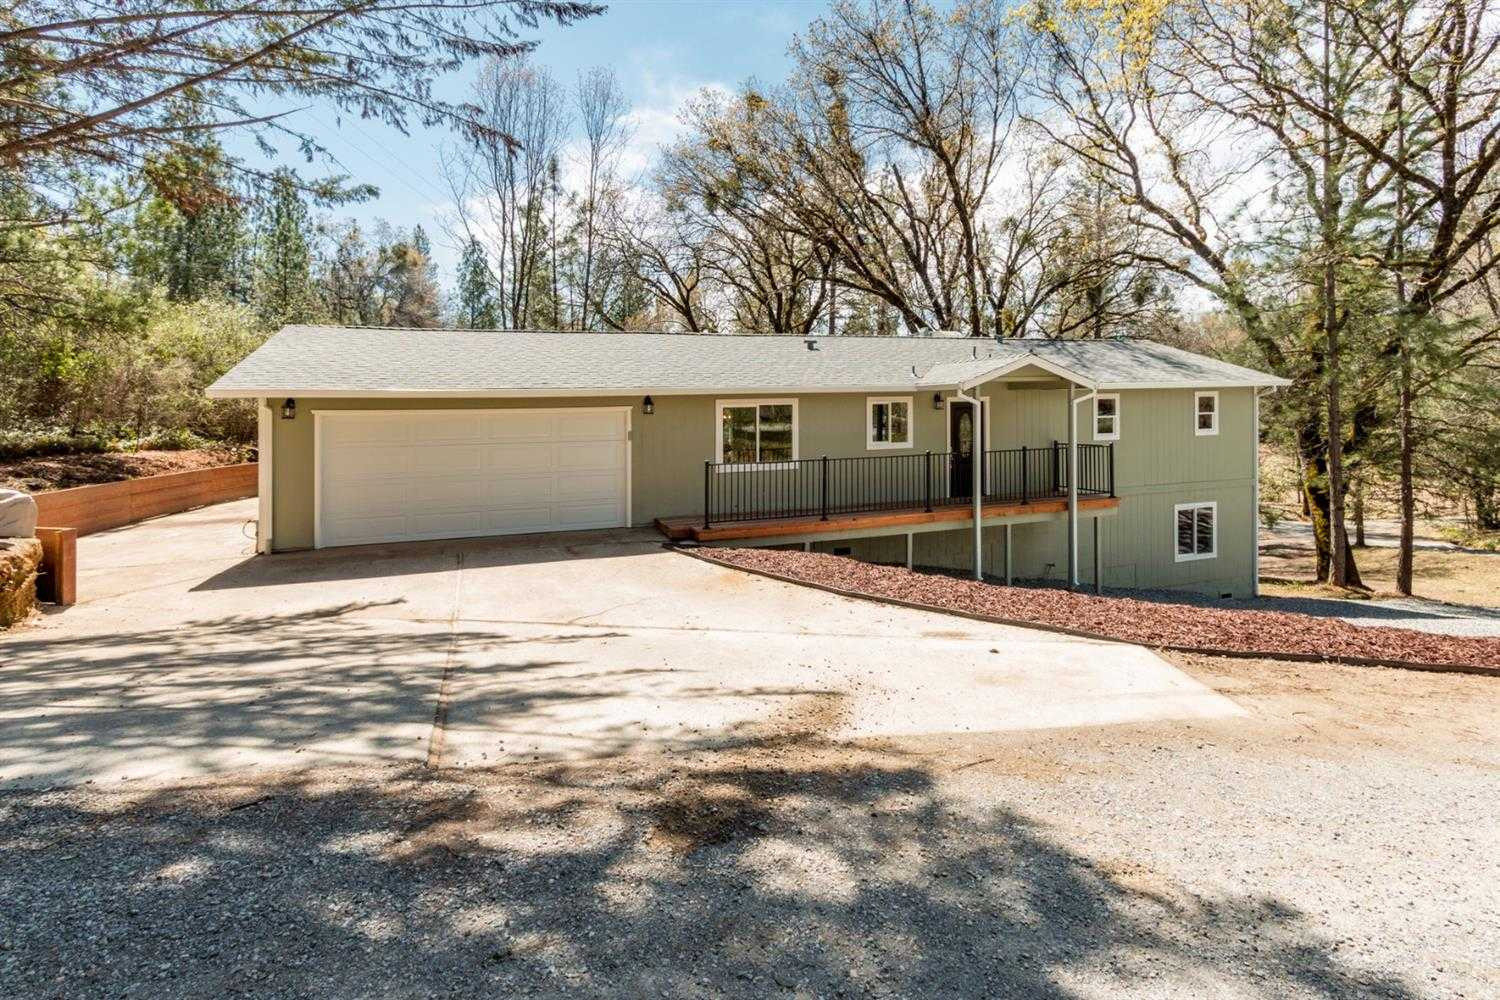 4545 Washboard Ln Placerville, CA 95667